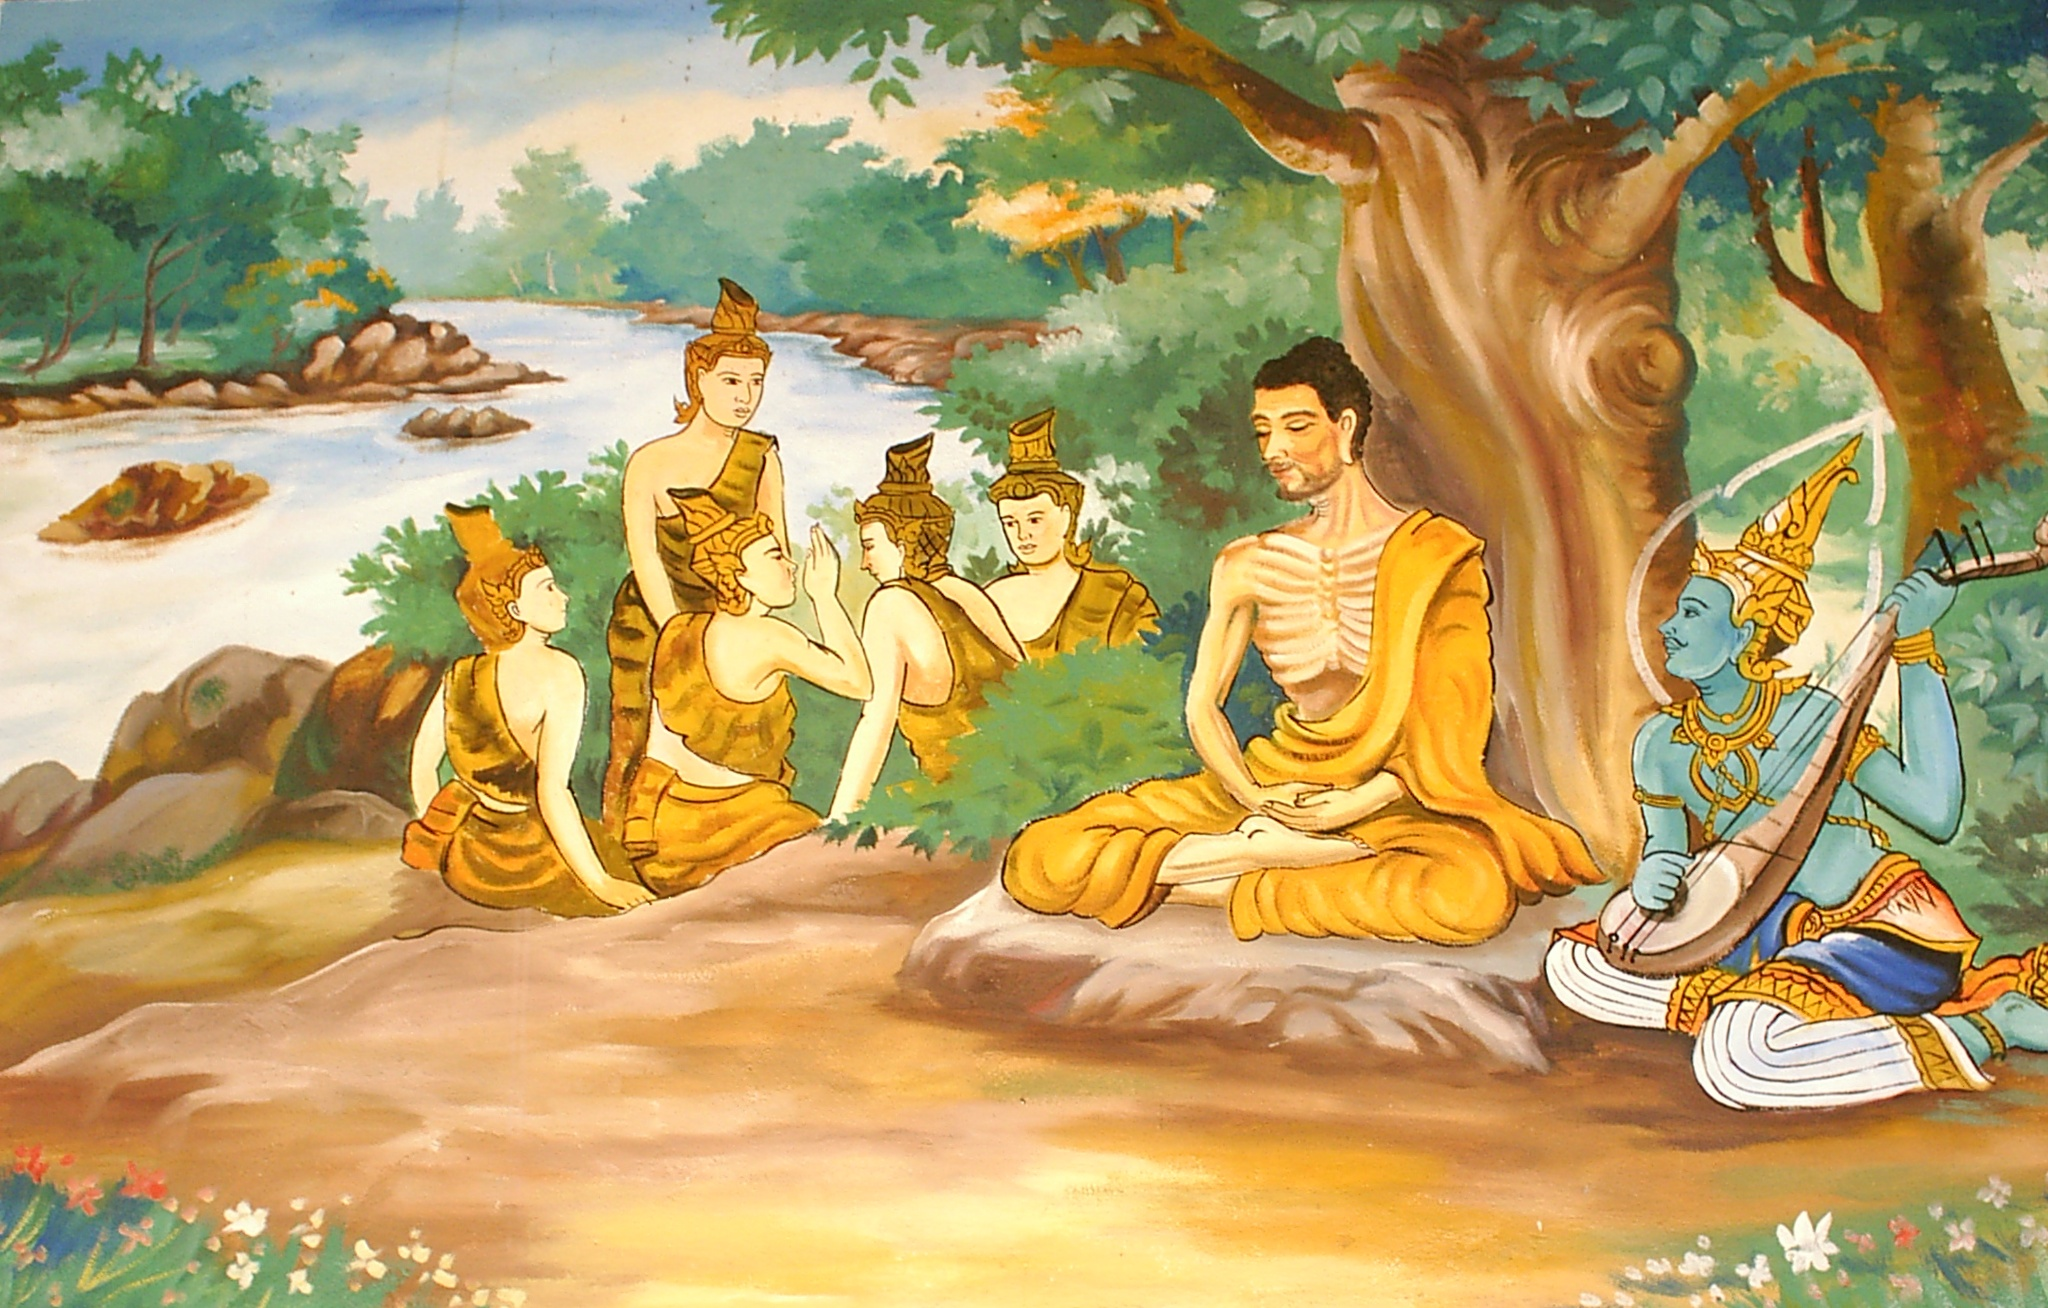 Gautama Buddha undertaking extreme ascetic practices before his enlightenment on the bank of river Phalgu in Bodh Gaya, Bihar.